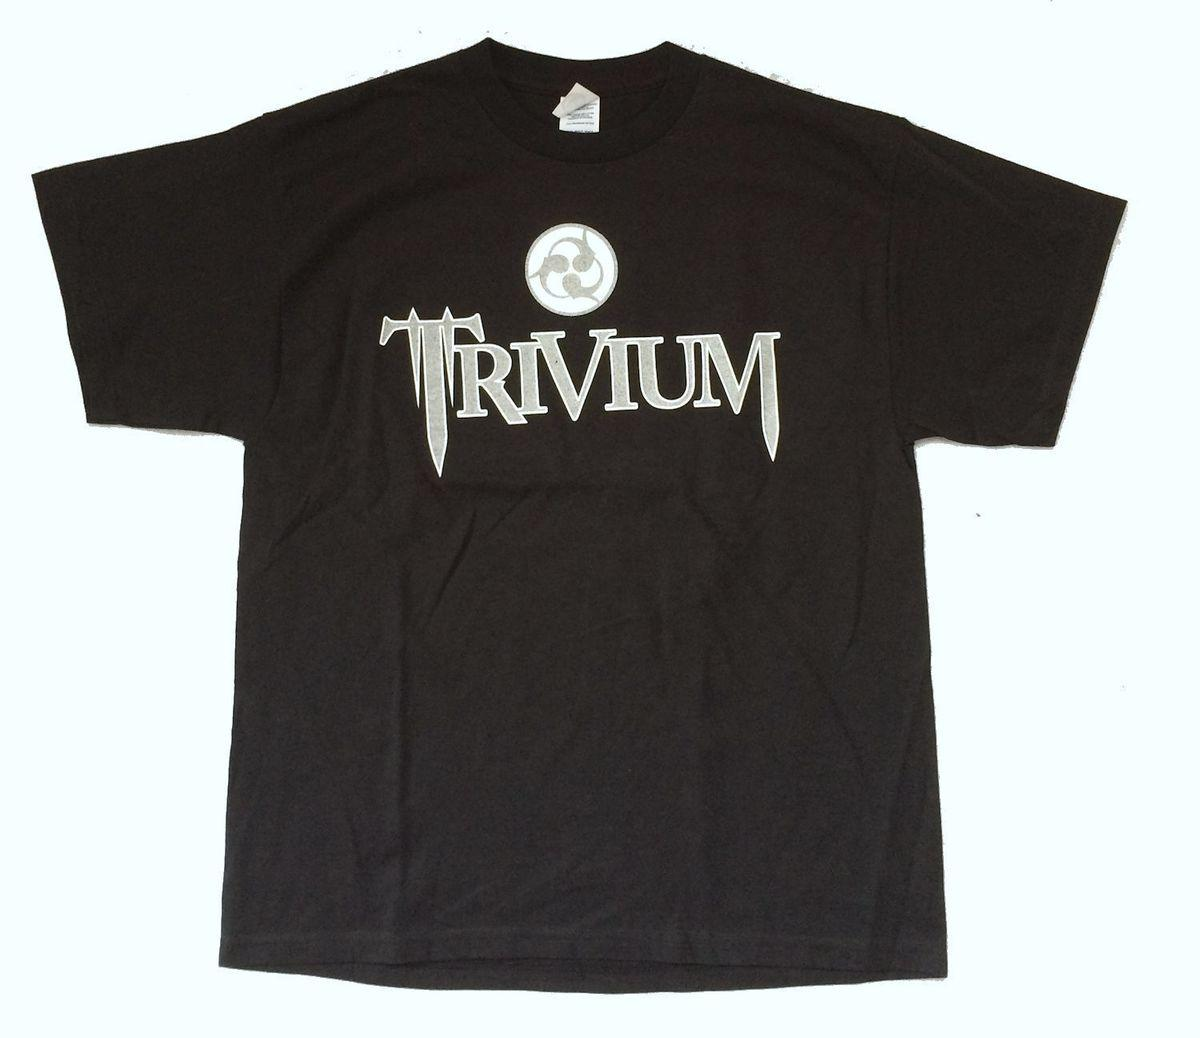 Trivium Silver Logo Crusade 2007 N.A. Summer Tour Black T Shirt Nuevo estilo oficial Summer Style para hombre T-Shirt Chinese Style